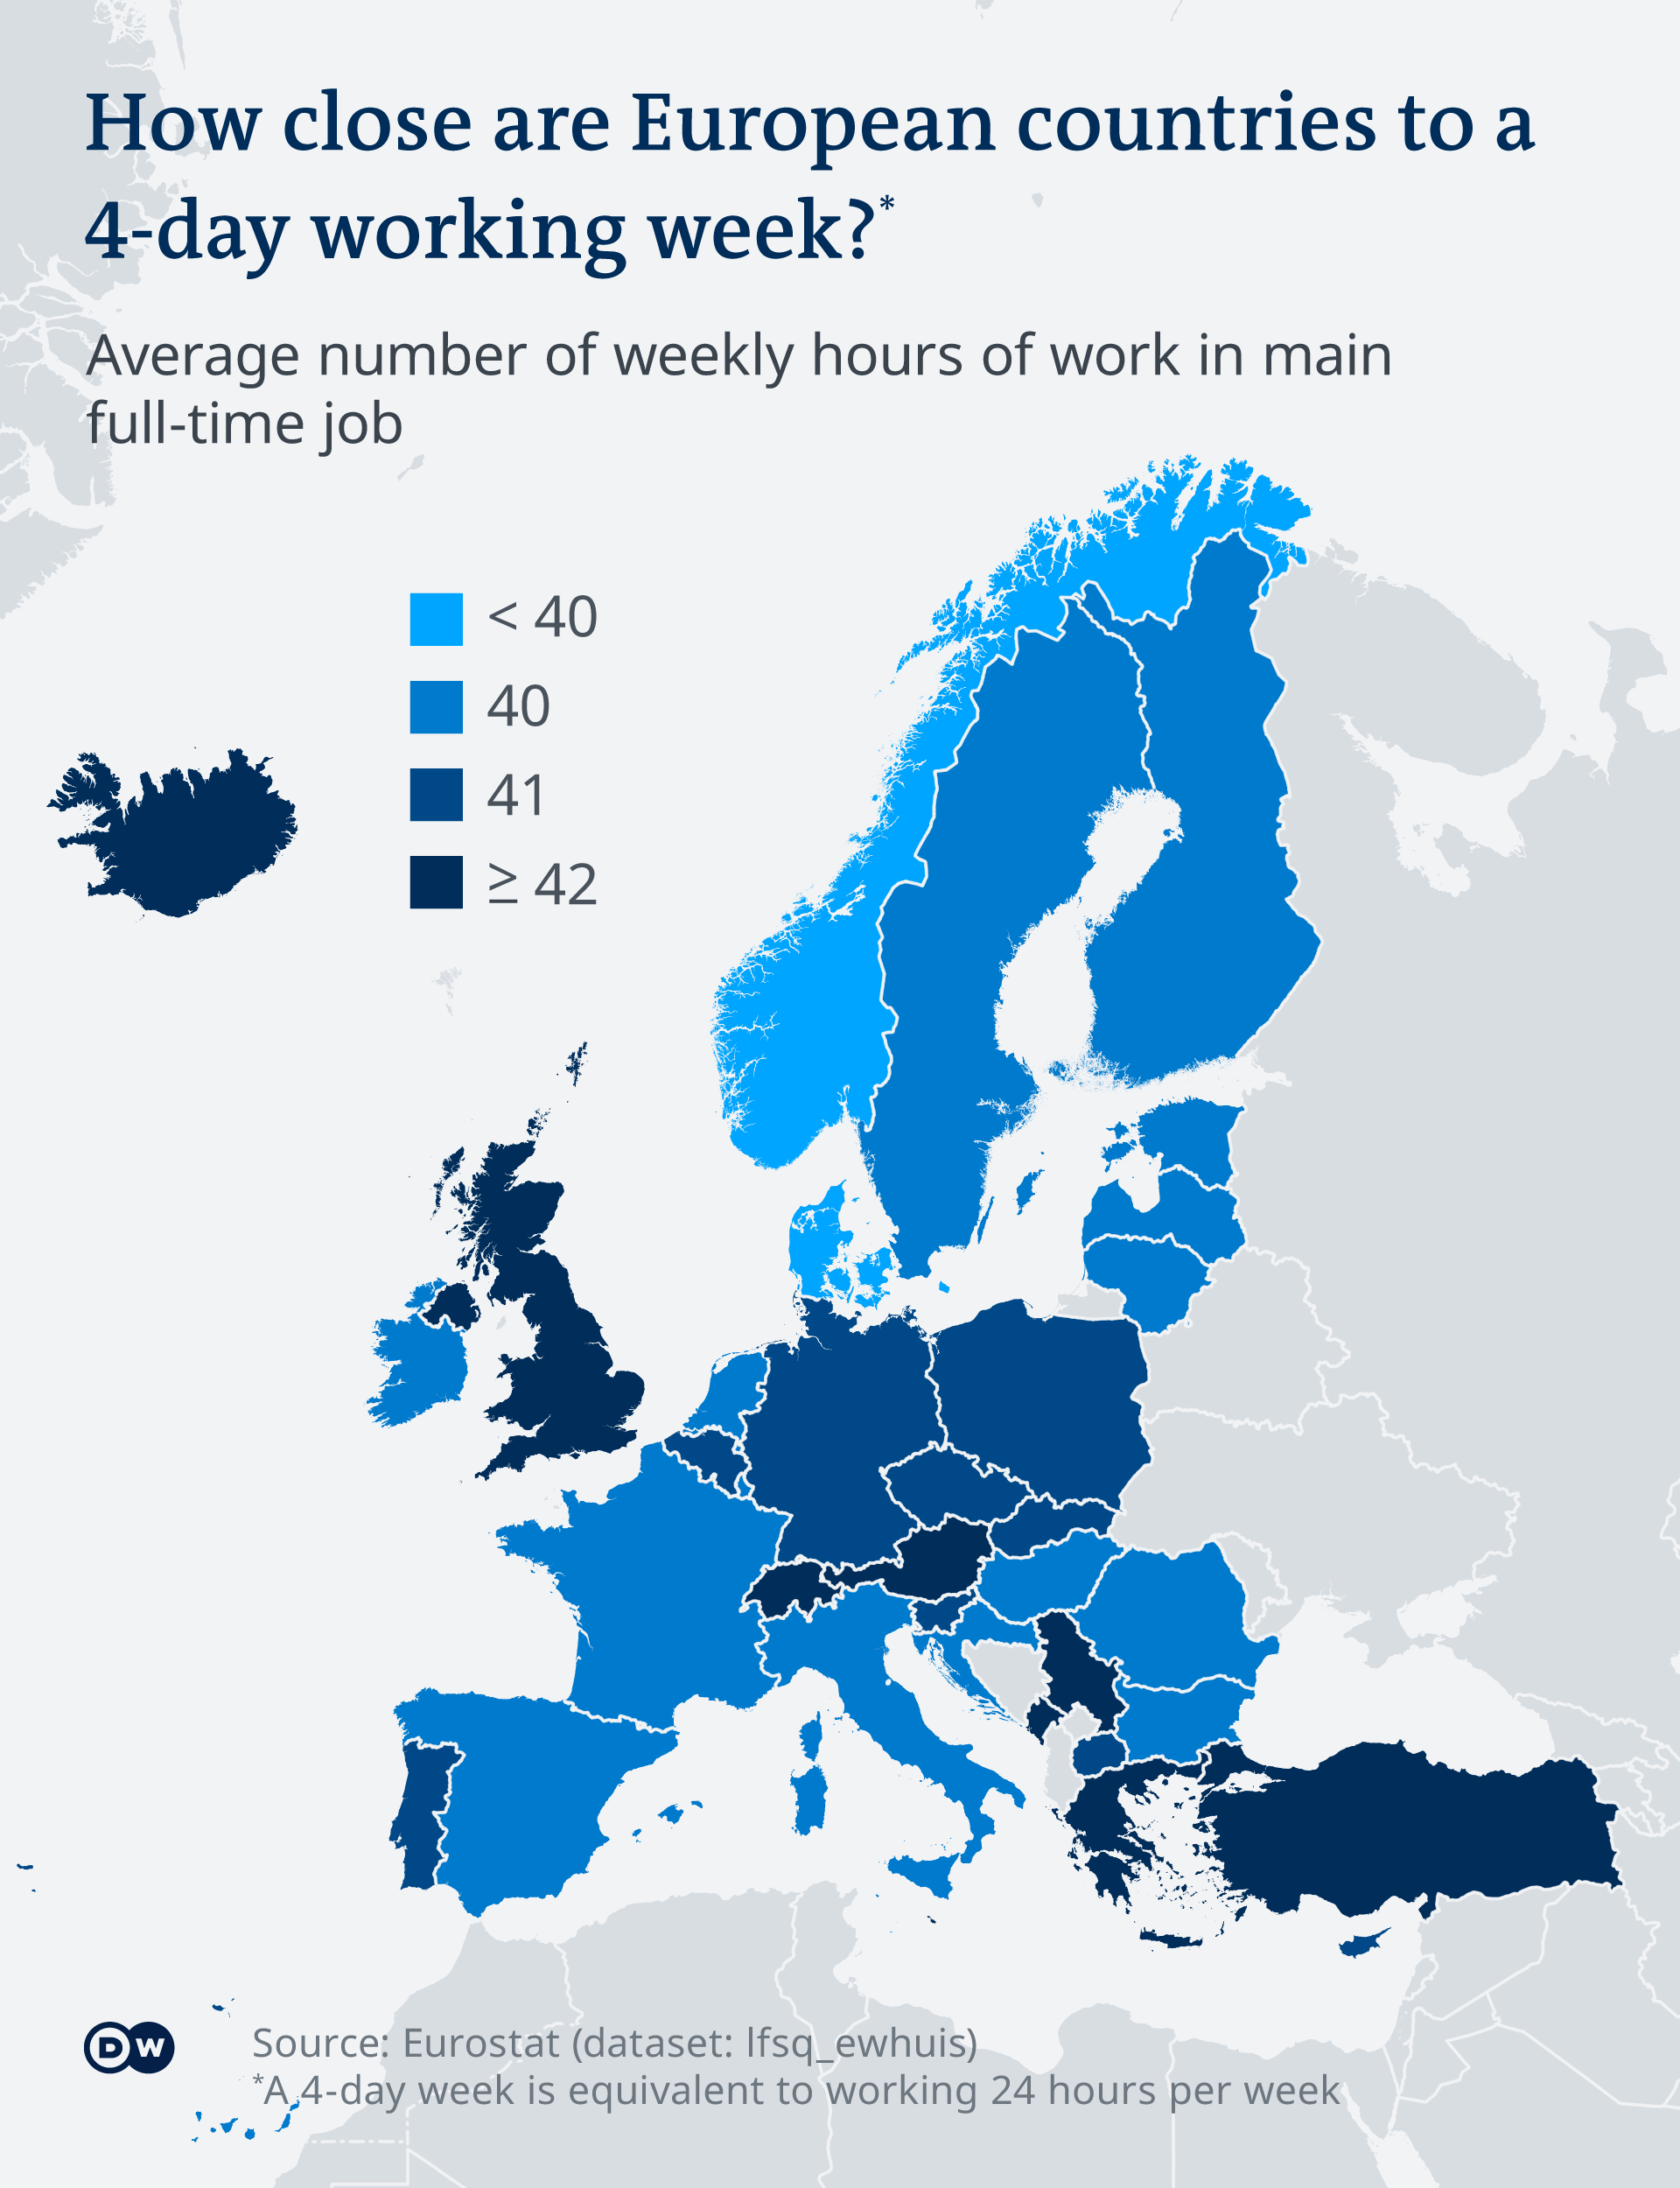 Graphic: How close are European countries to a 4-day working week?